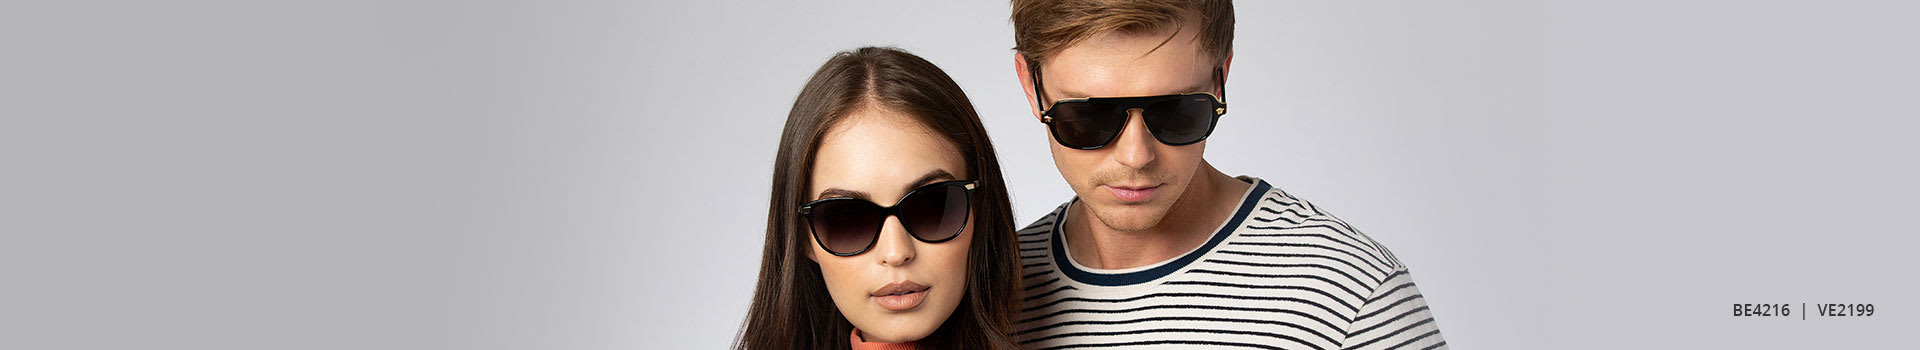 Shop Sunglasses - featuring Burberry BE4216 and Versace VE2199